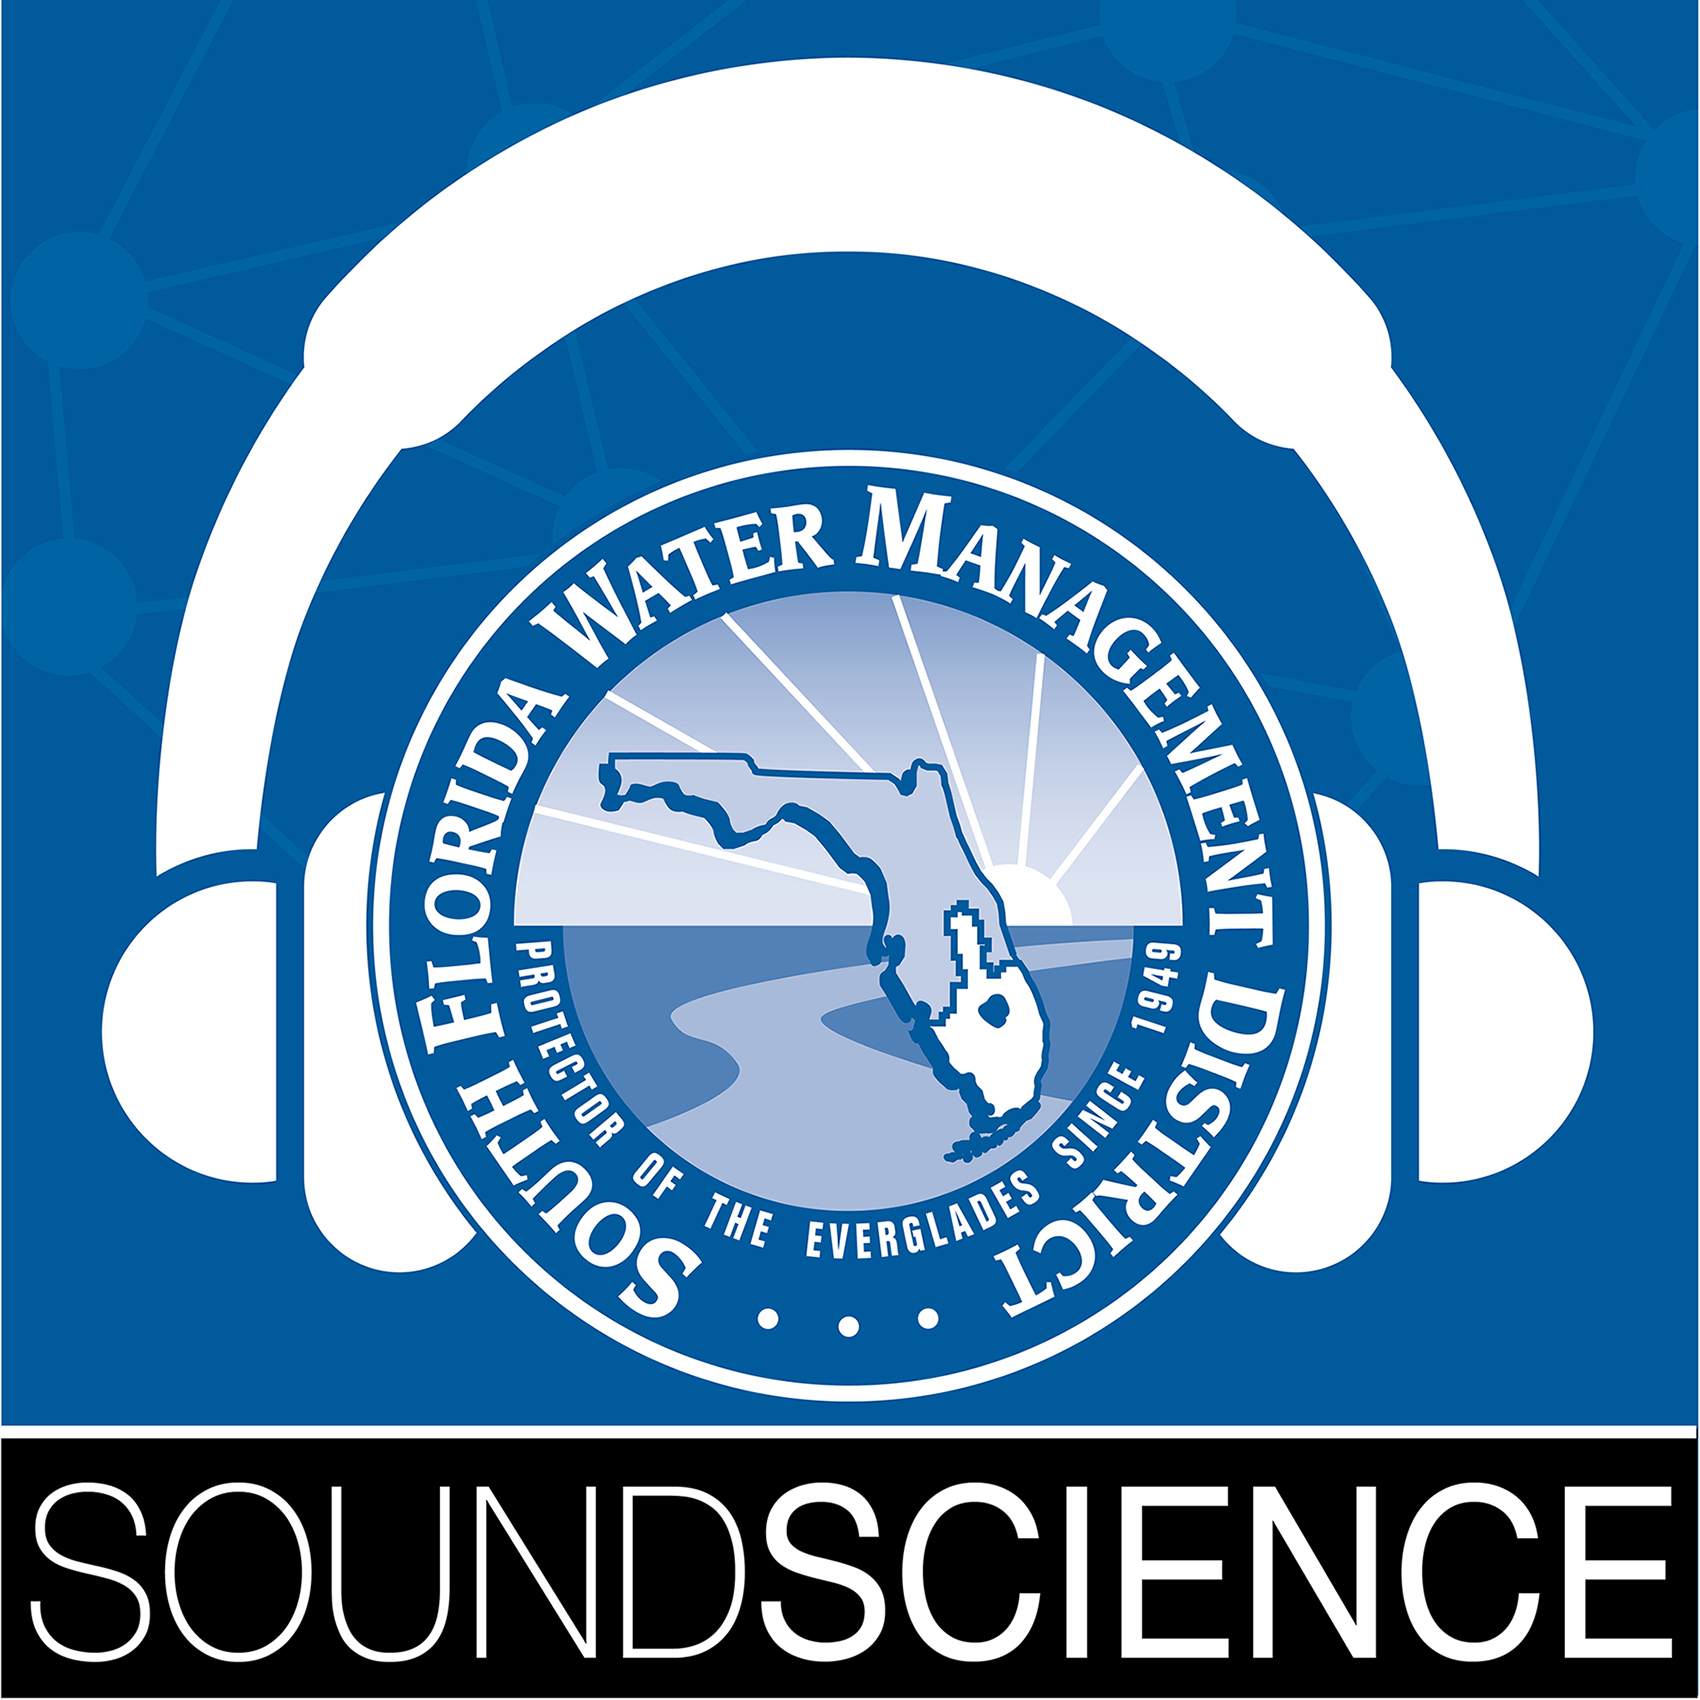 SFWMD's SOUNDSCIENCE